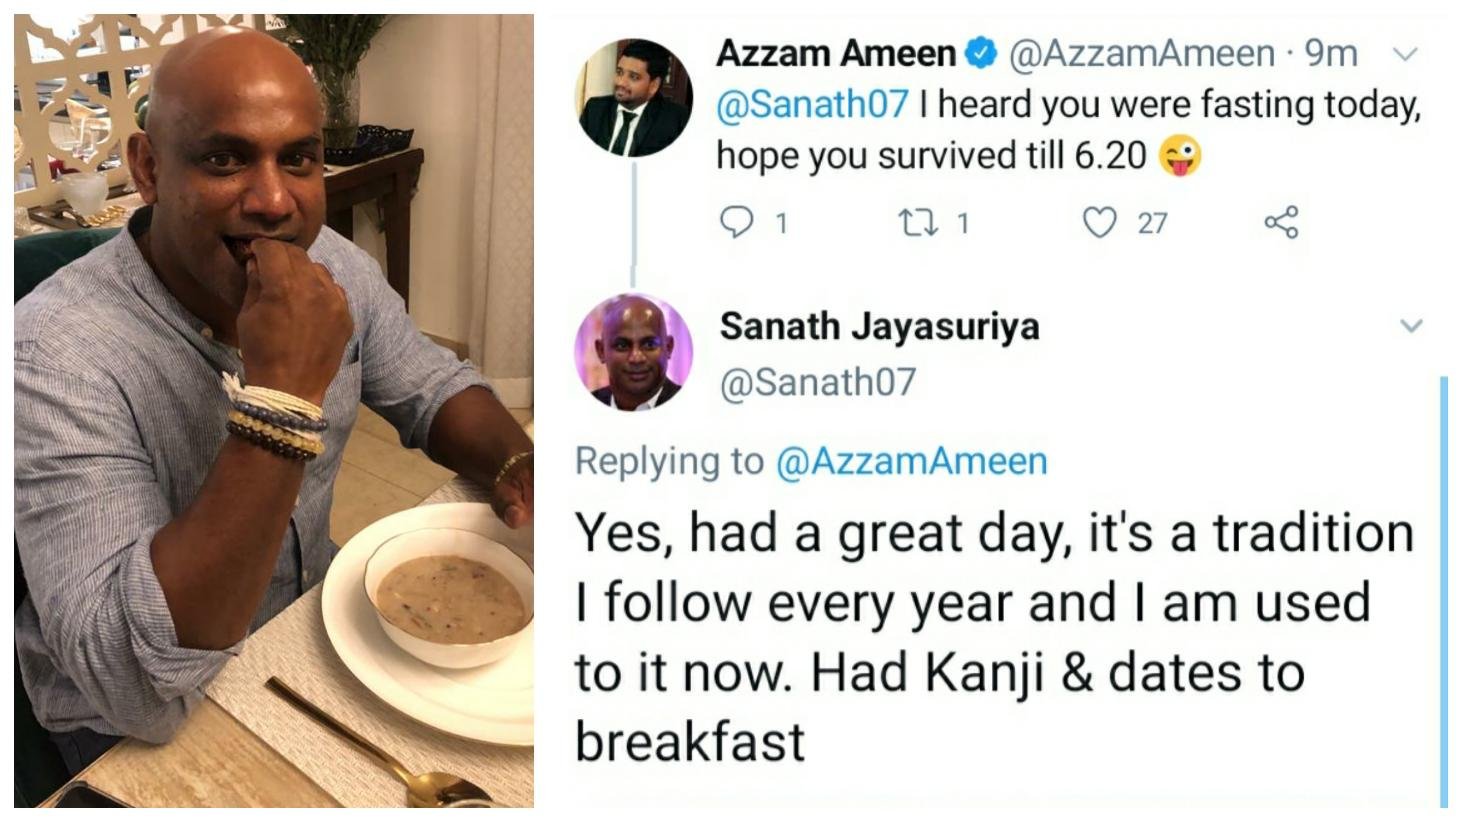 Sanath Jayasuriya fasting during Ramadan